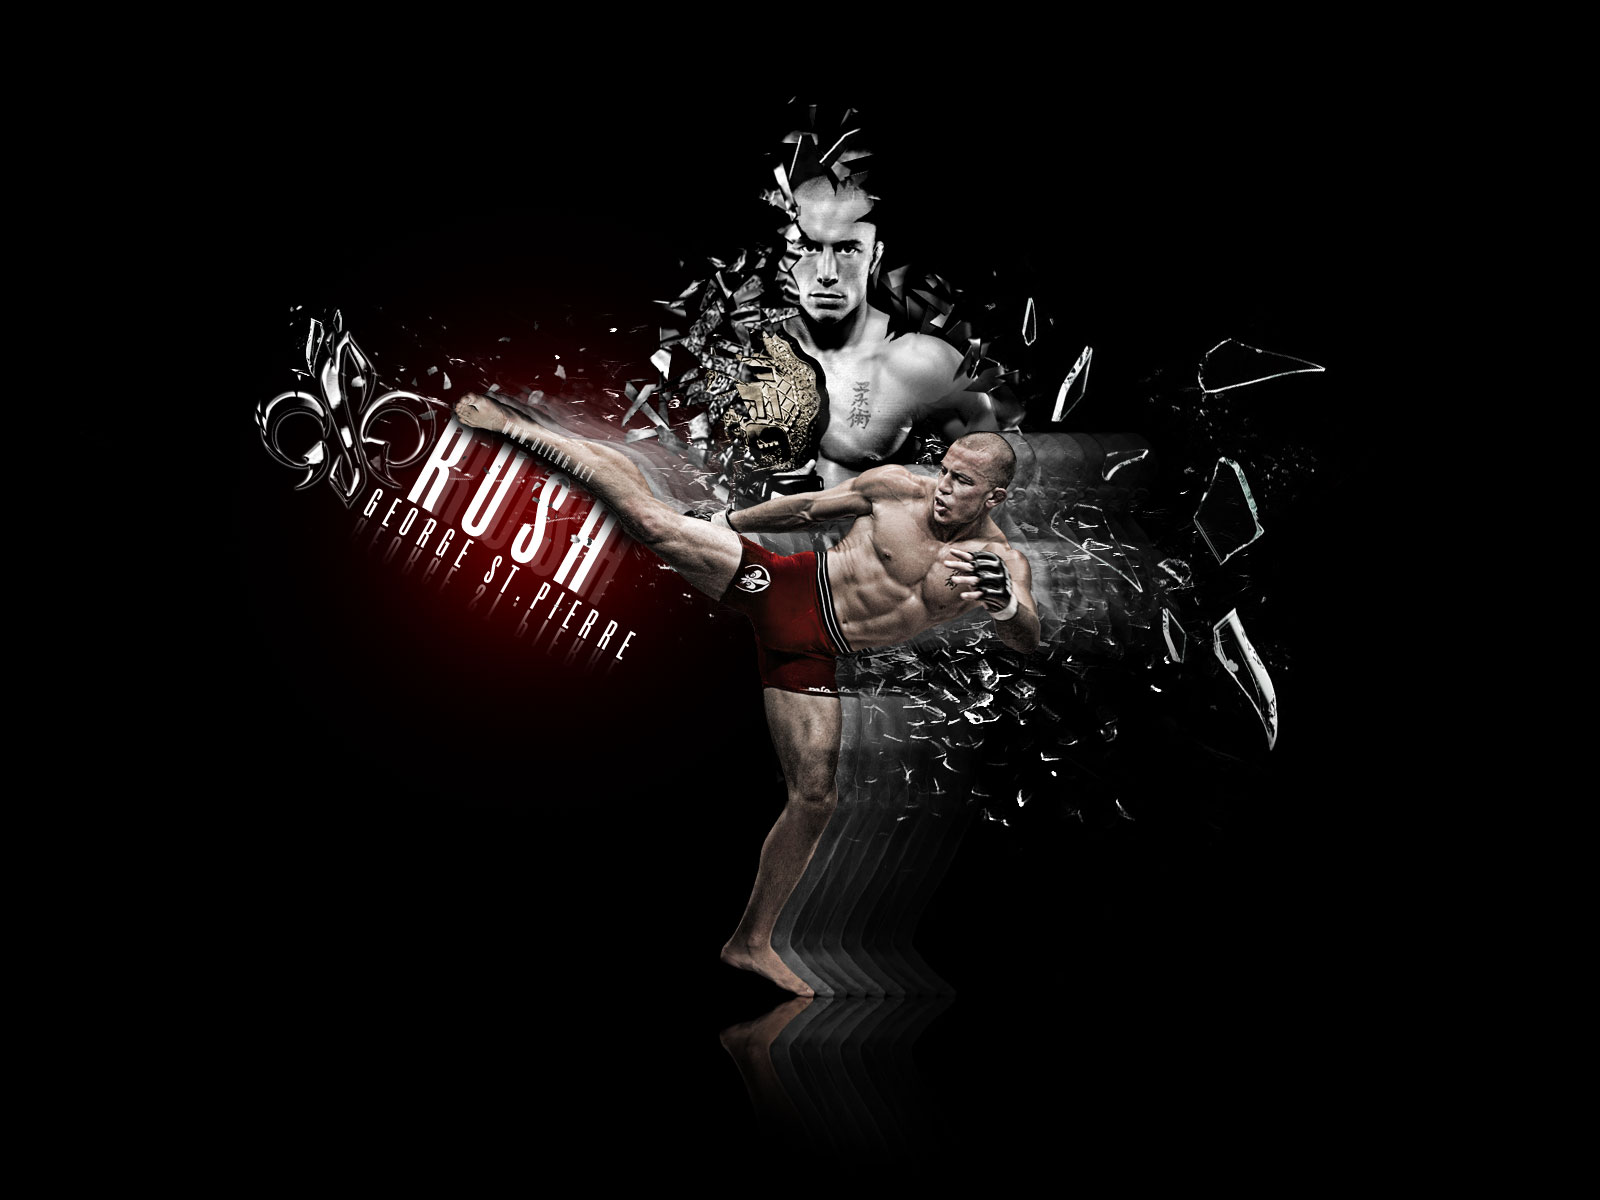 fighting championship mma mixed martial arts wallpaper background 1600x1200